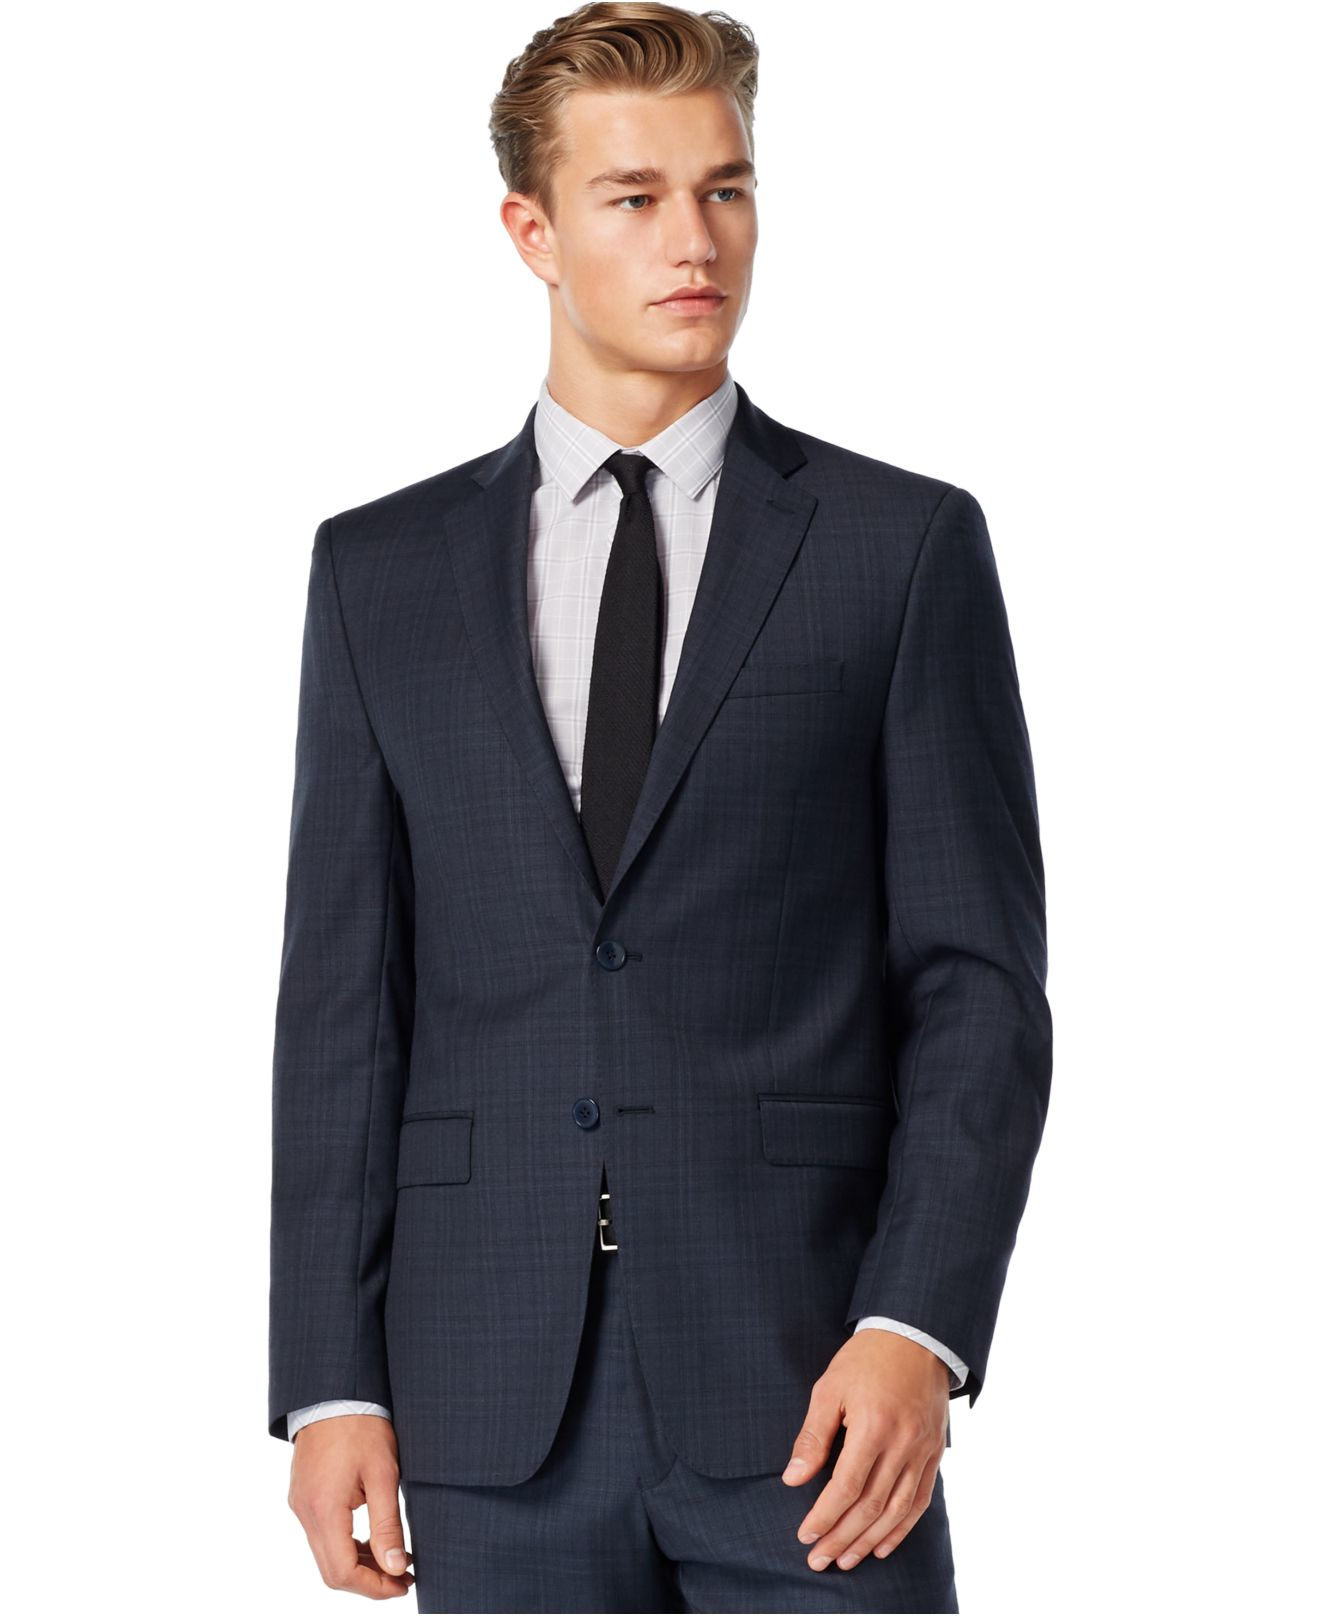 calvin klein navy plaid extra slim fit suit in blue for. Black Bedroom Furniture Sets. Home Design Ideas